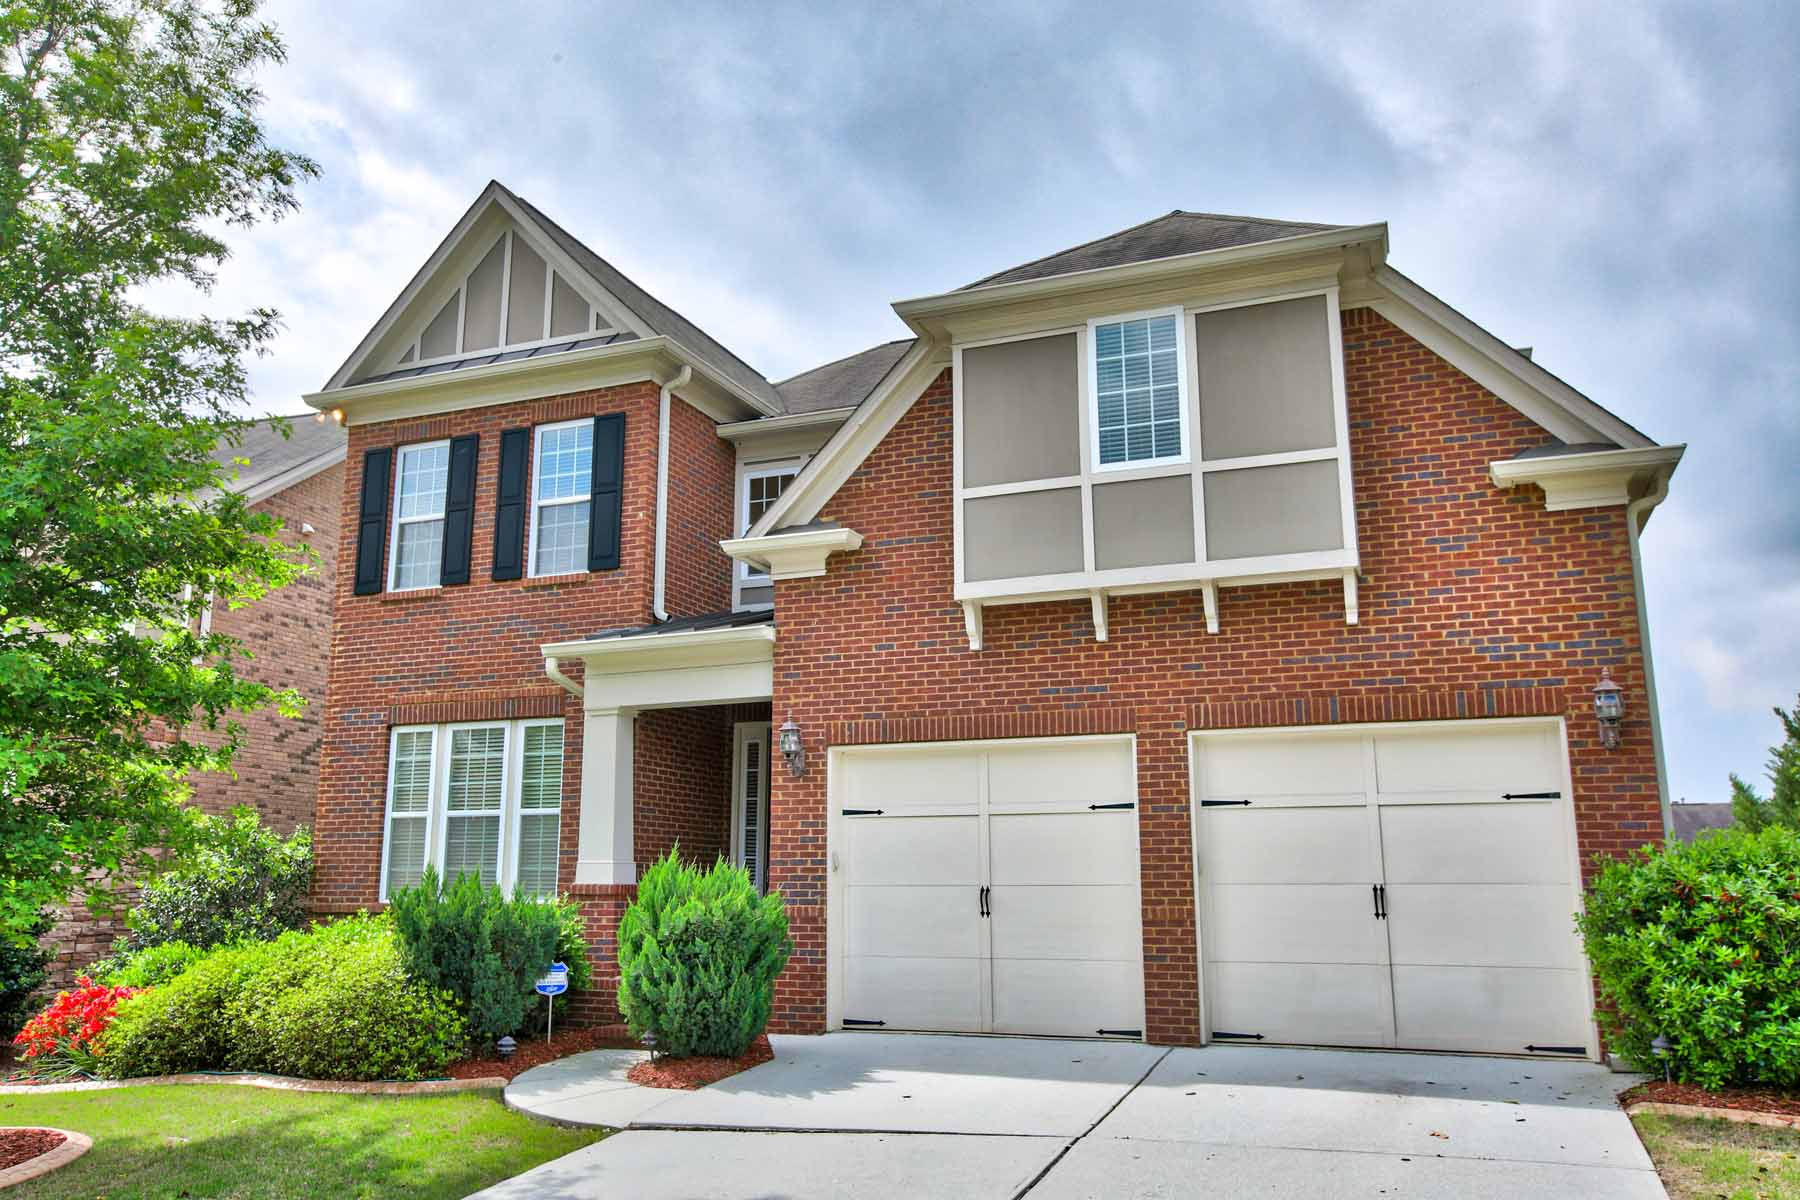 Single Family Home for Sale at Fabulous Home On A Great Lot 2236 Fort Drive SE Smyrna, Georgia, 30080 United States